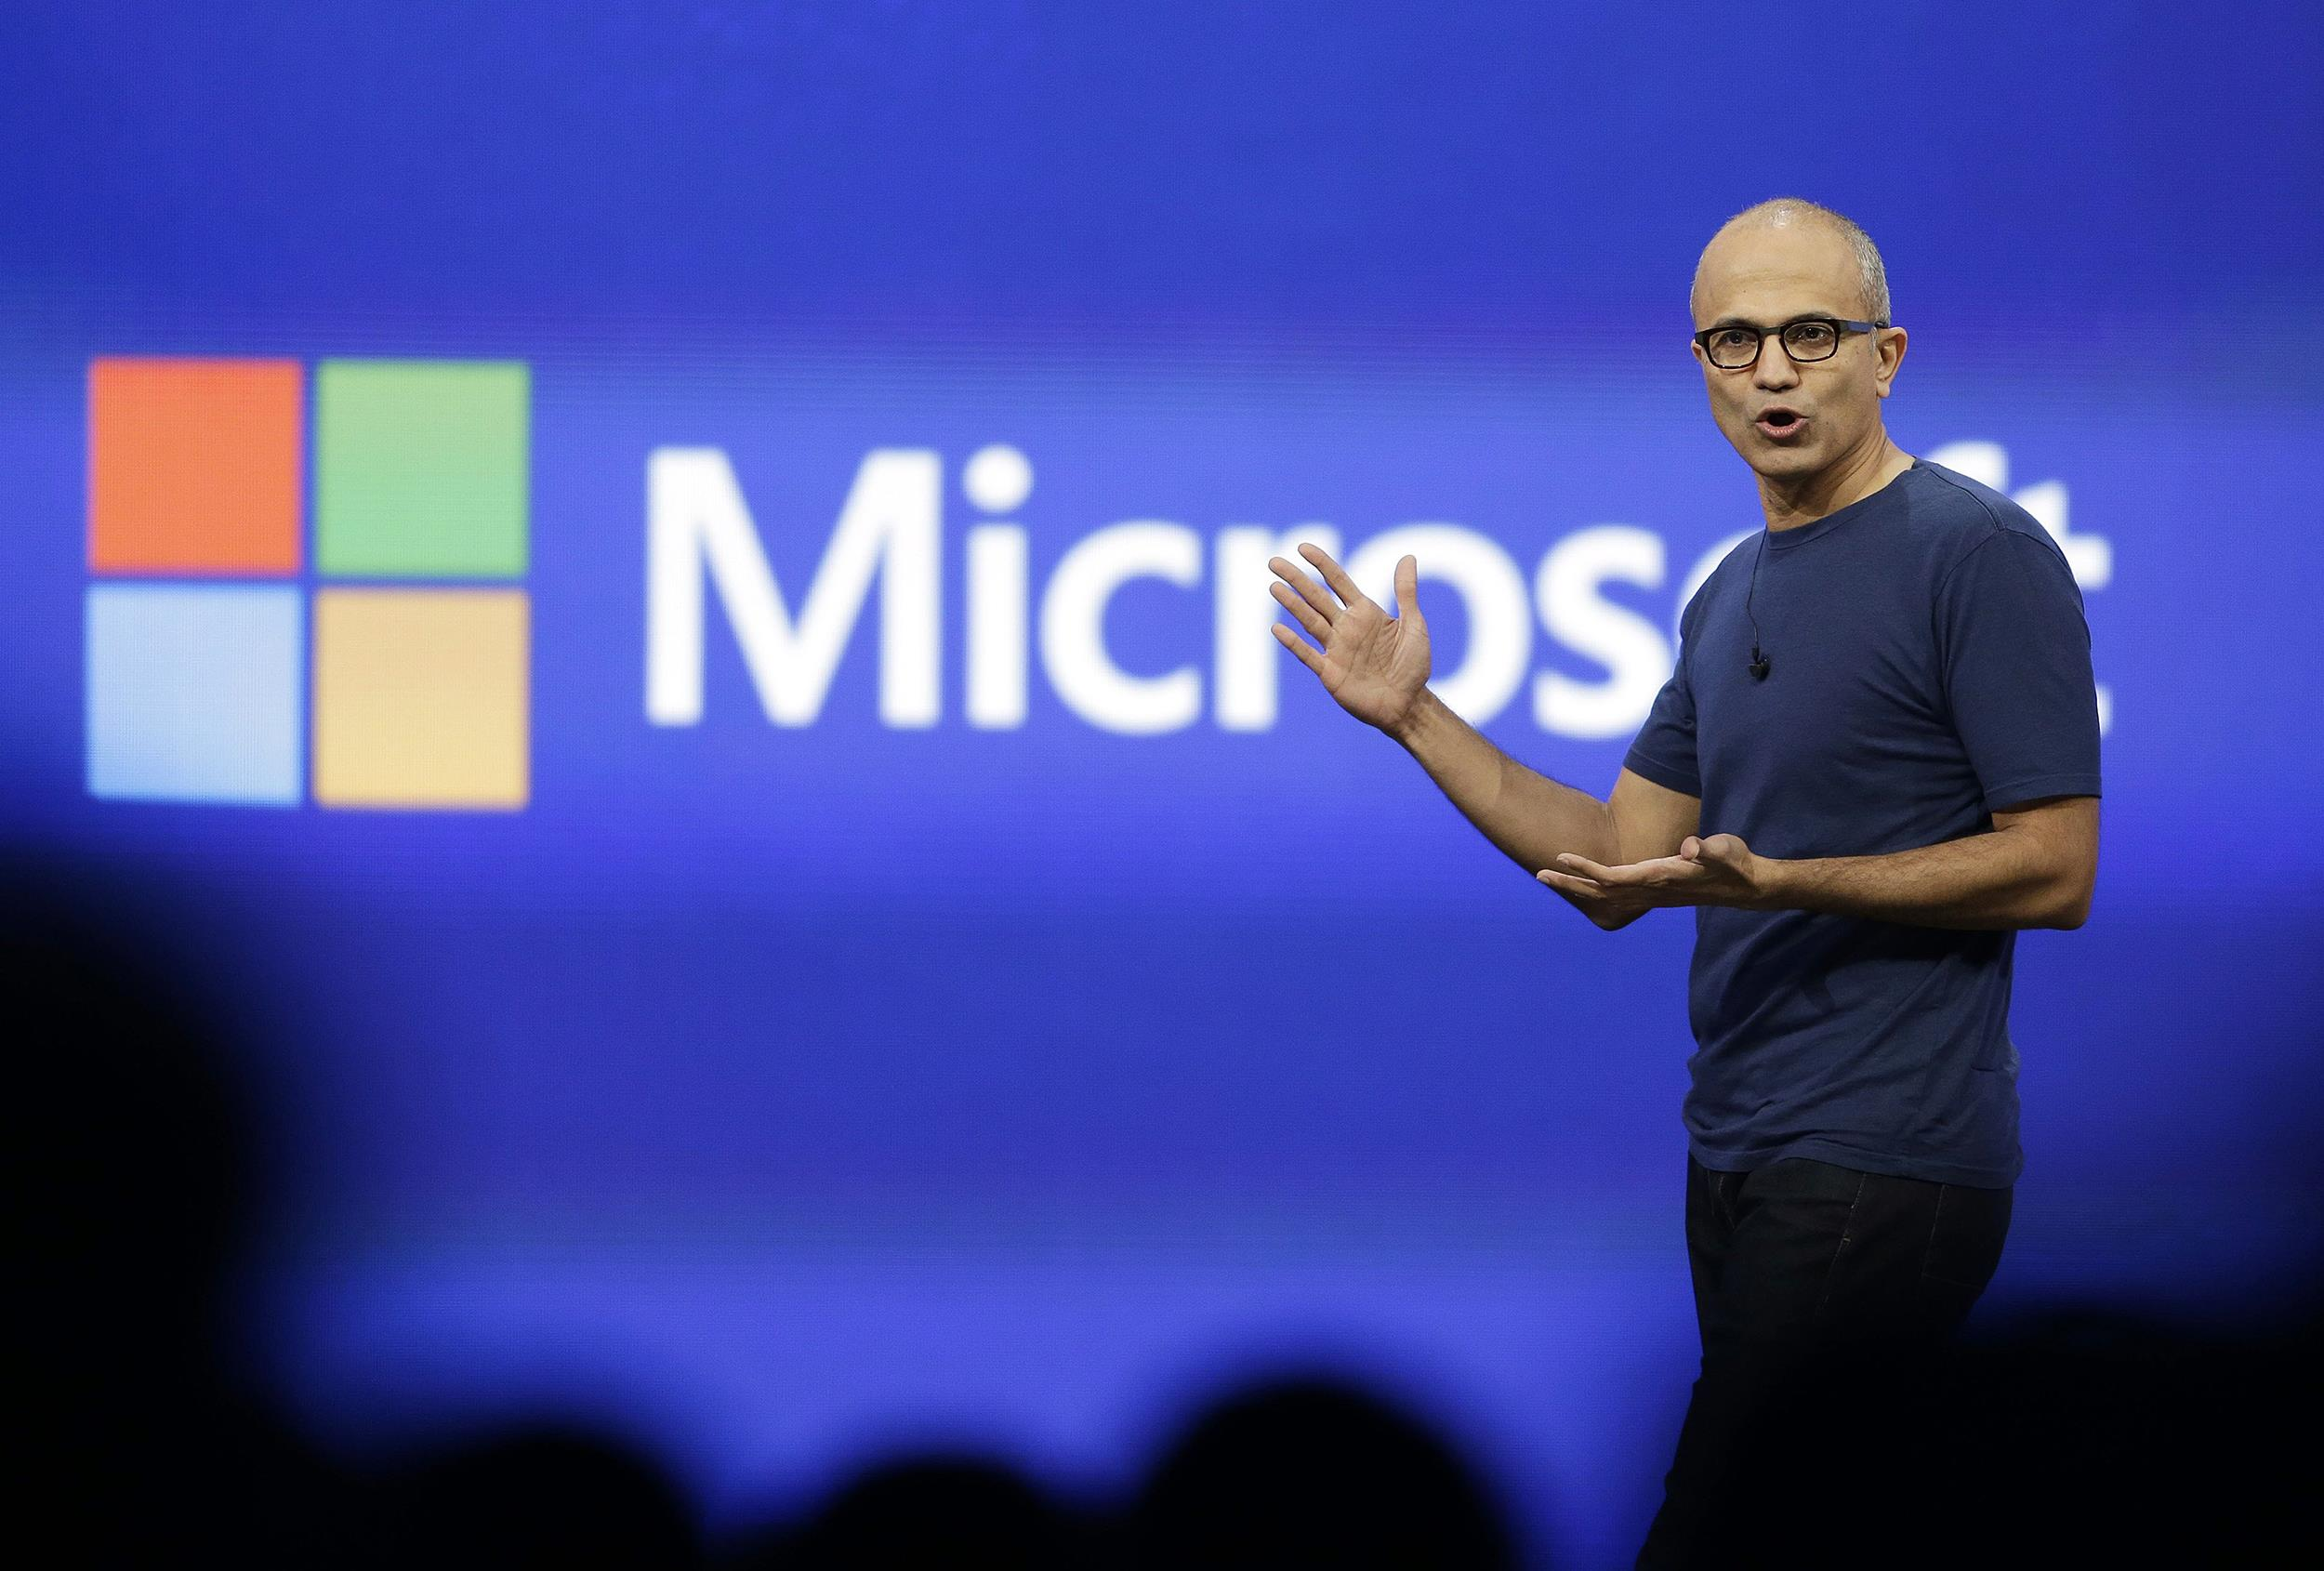 Microsoft Working on Ultimate Mobile Device: Satya Nadella